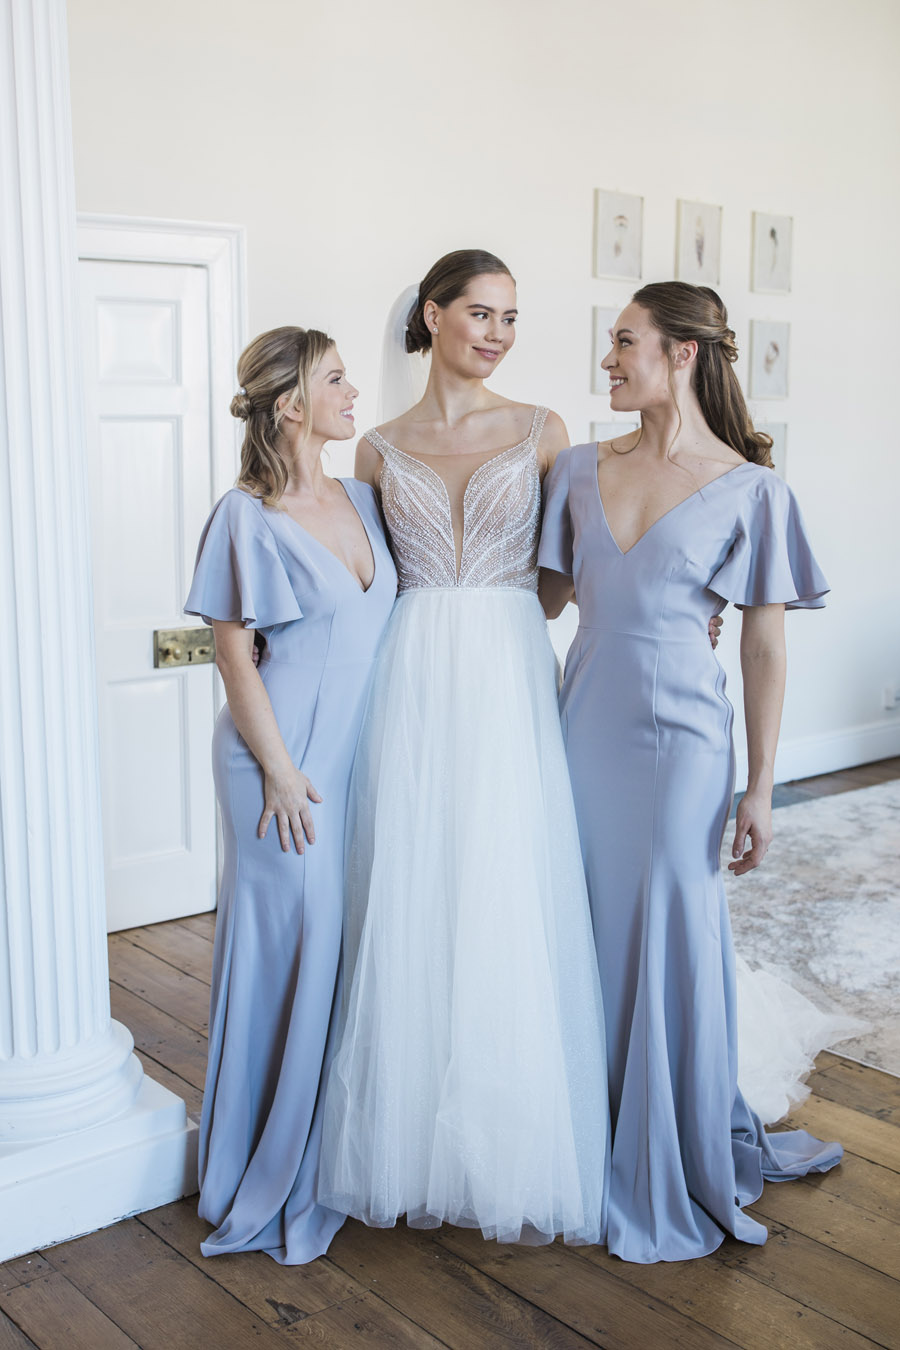 for bridesmaids everywhere, with love. Image credit Natalie D Photography (27)